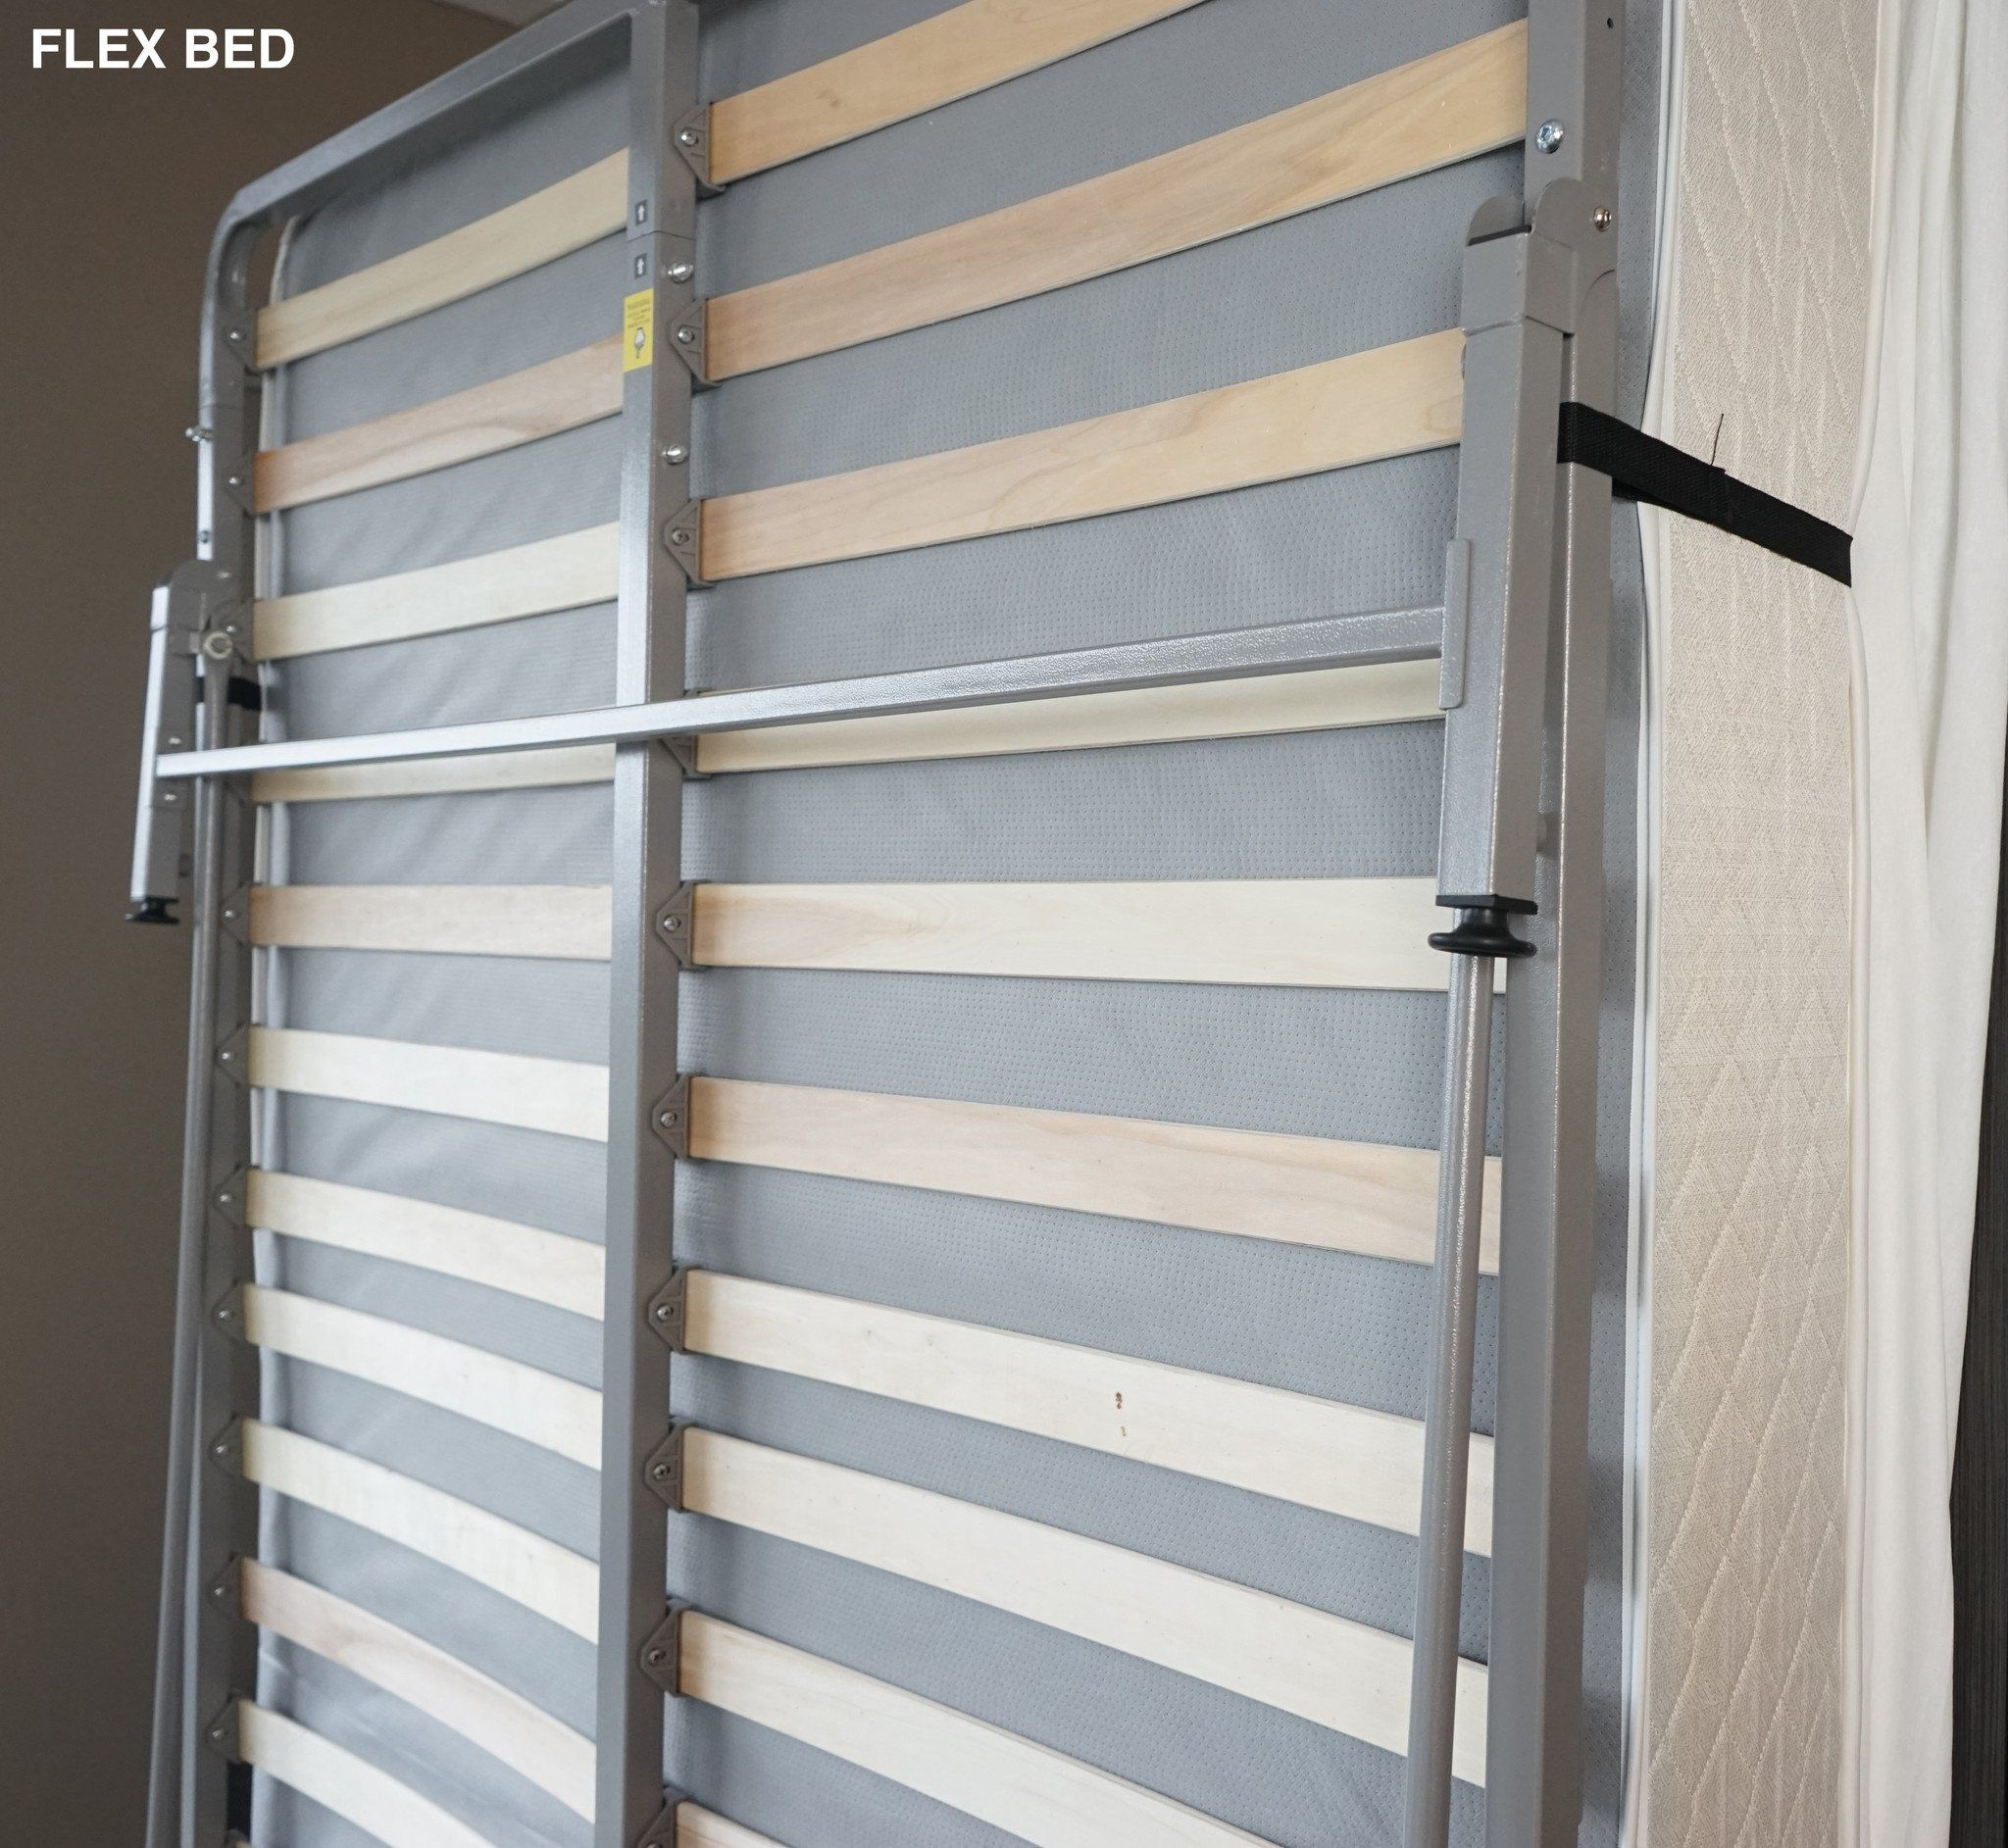 Vertical Flex Bed Free Standing Wall Beds Free